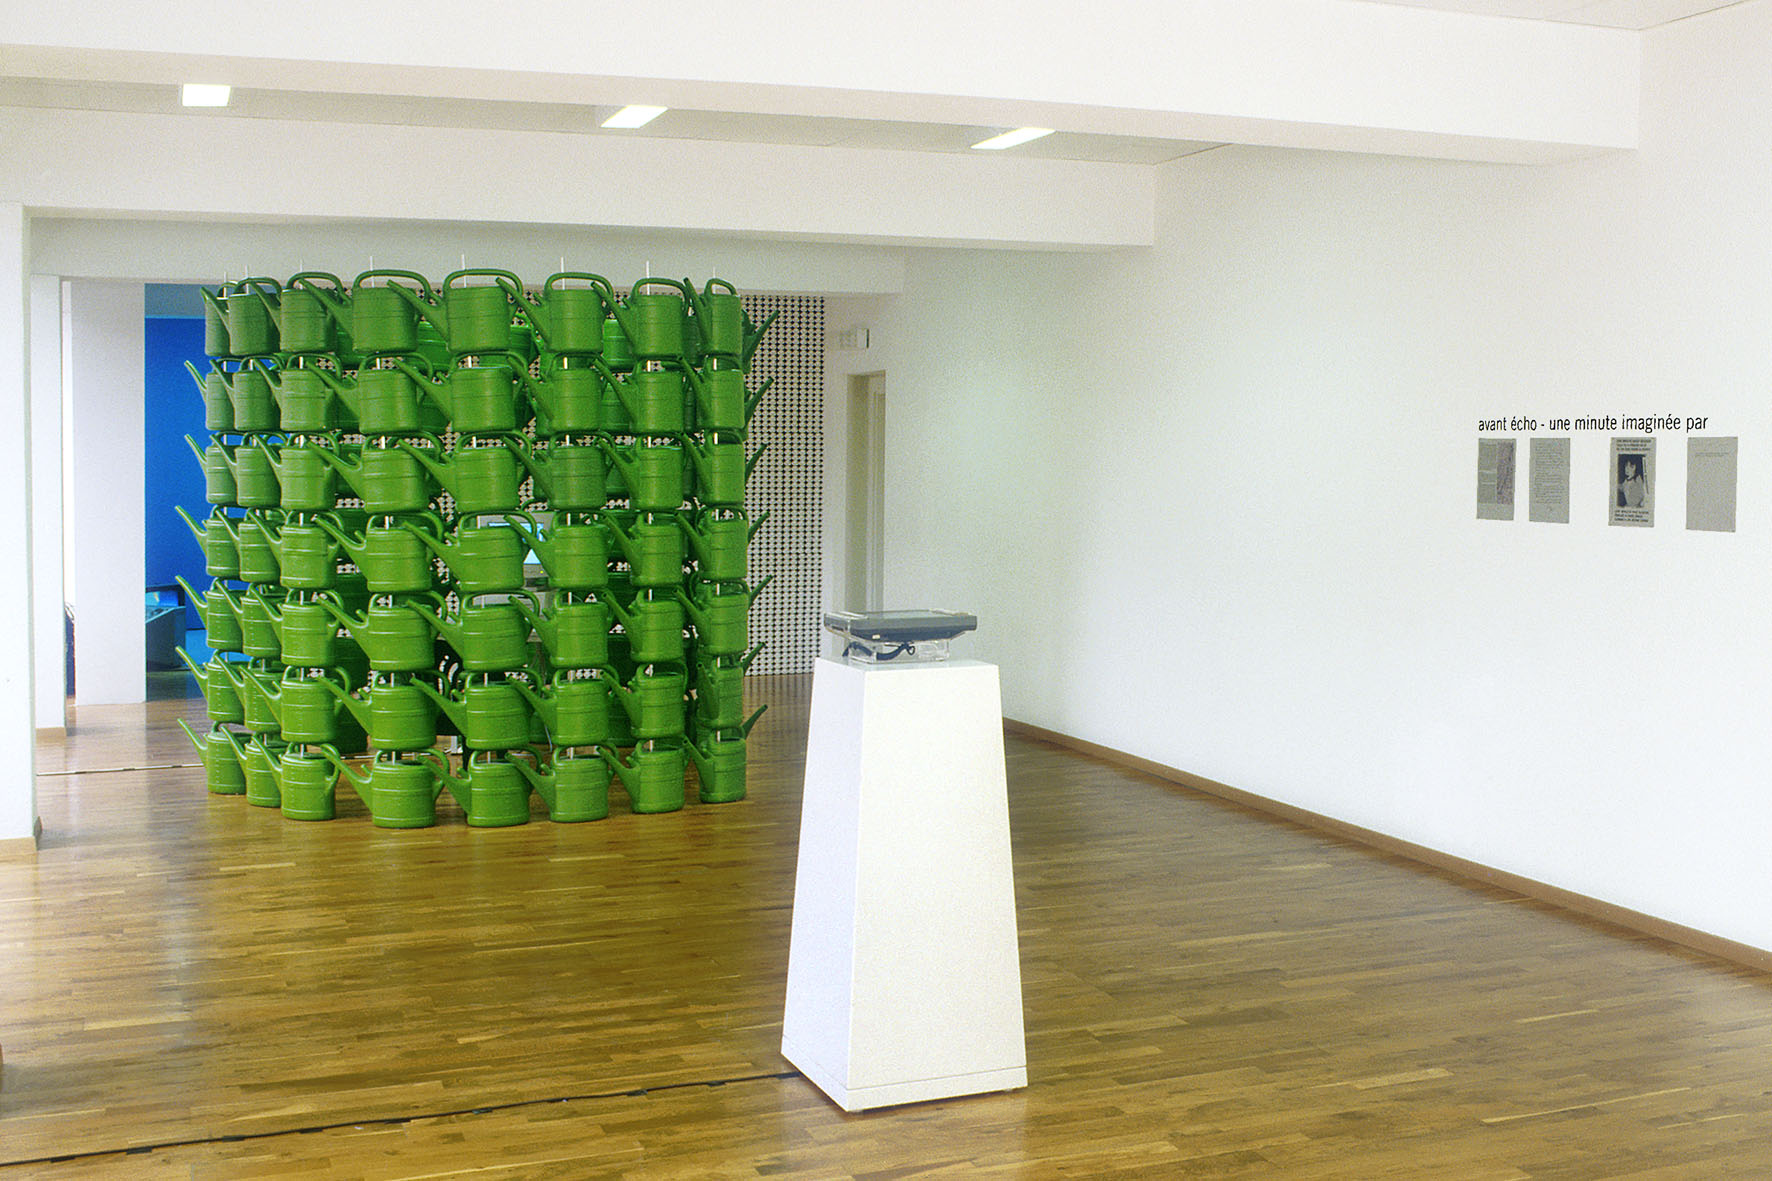 Anticipation version 4.0, exhibition view